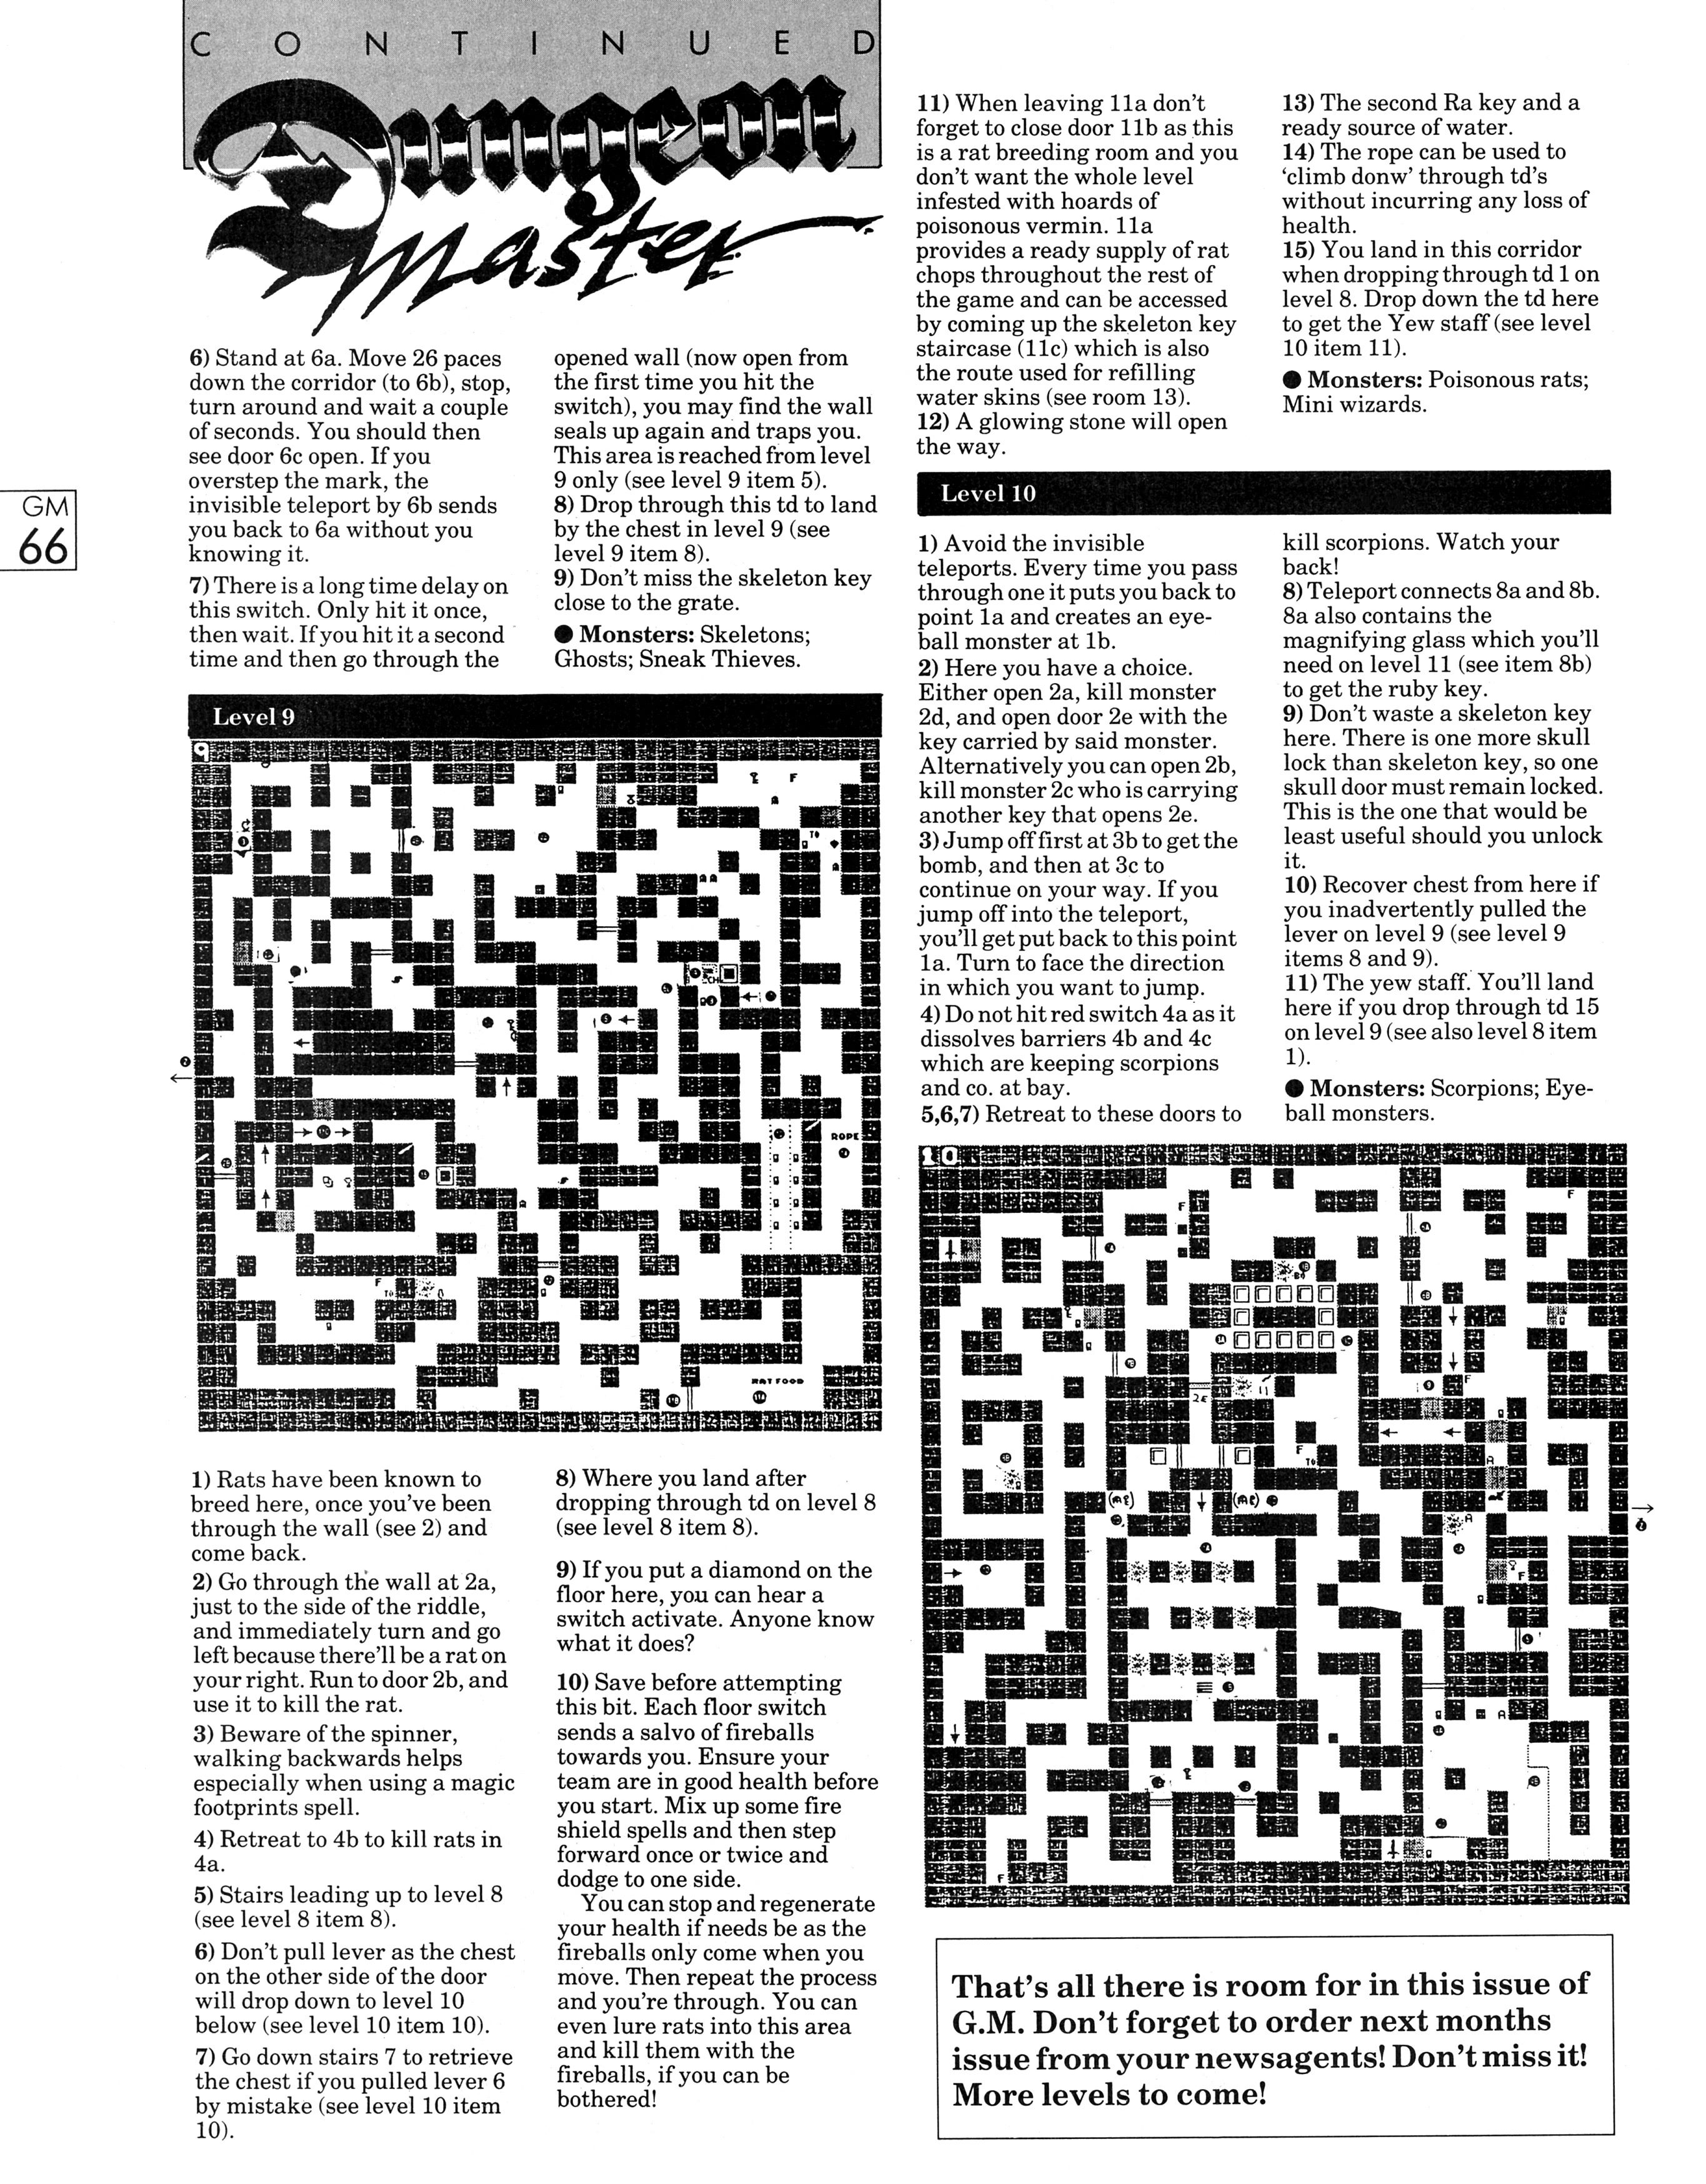 Dungeon Master Guide published in British magazine 'Game Master', Vol 1 No 2 October 1988, Page 66